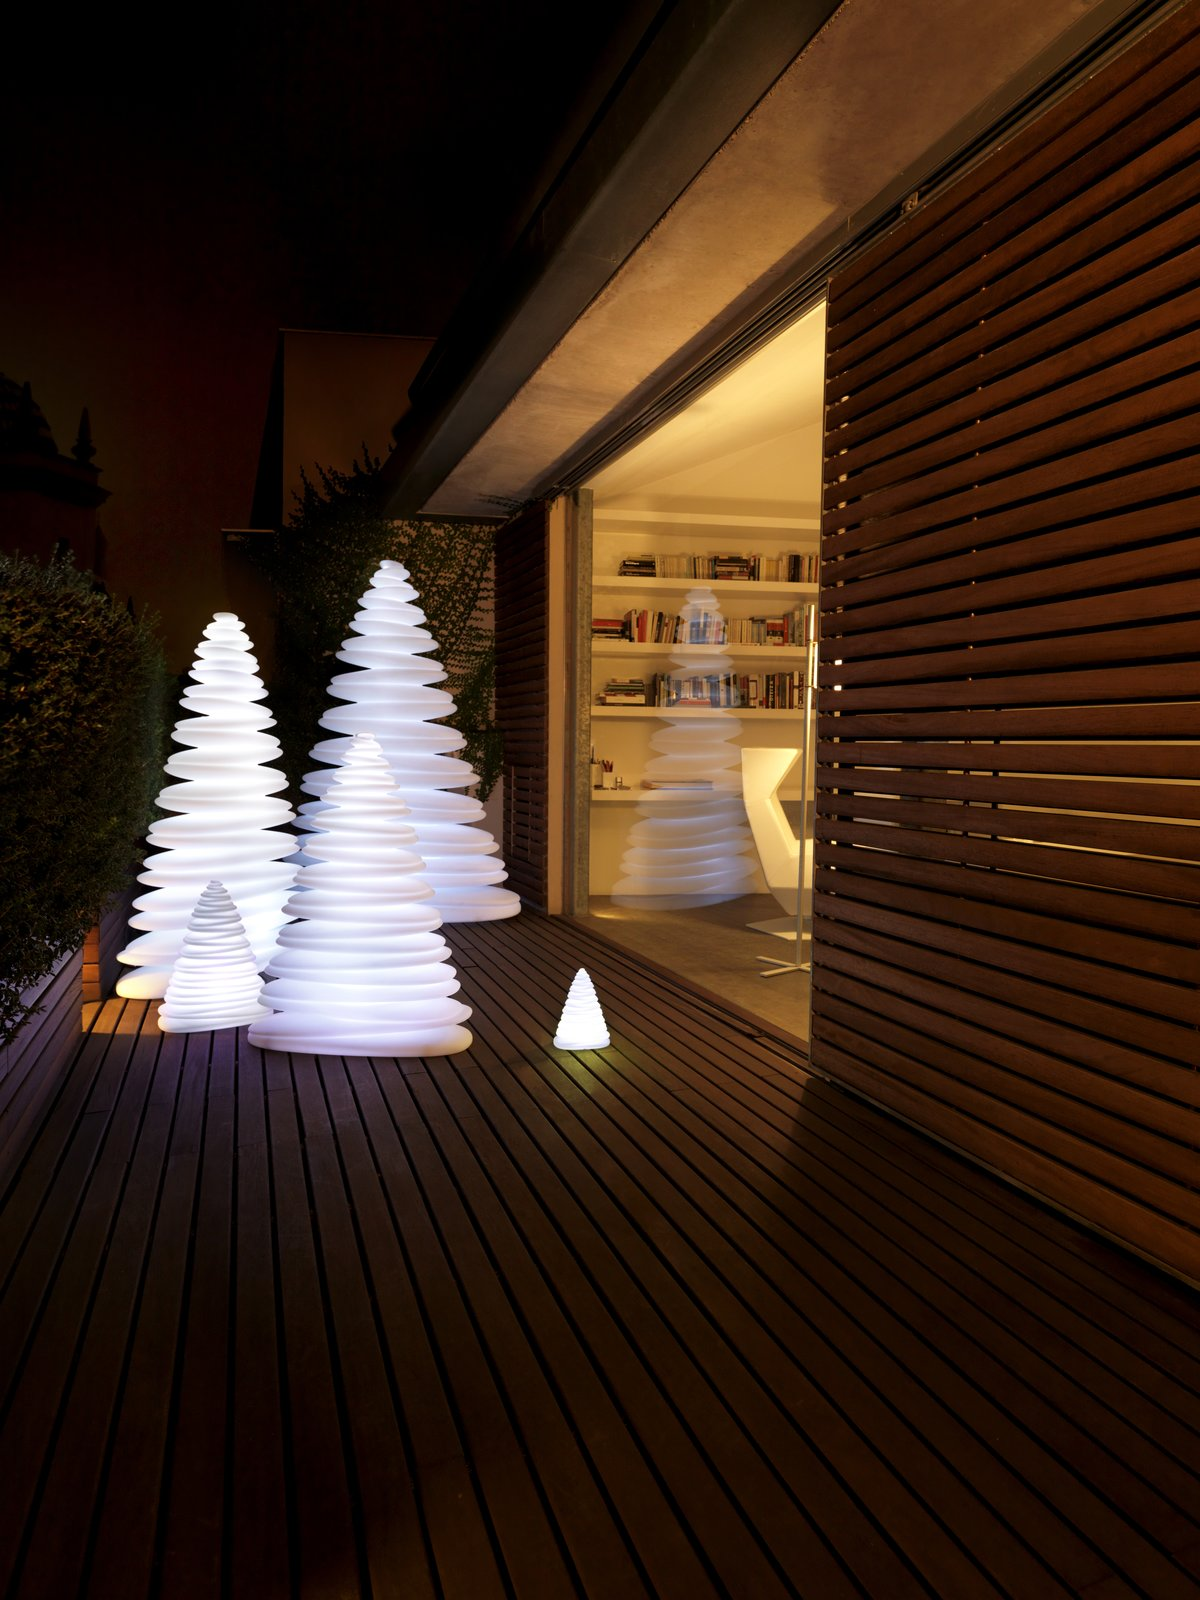 Chrismy.- Christmas tree by Teresa Sapey for VONDOM  Christmas from Chrismy from VONDOM